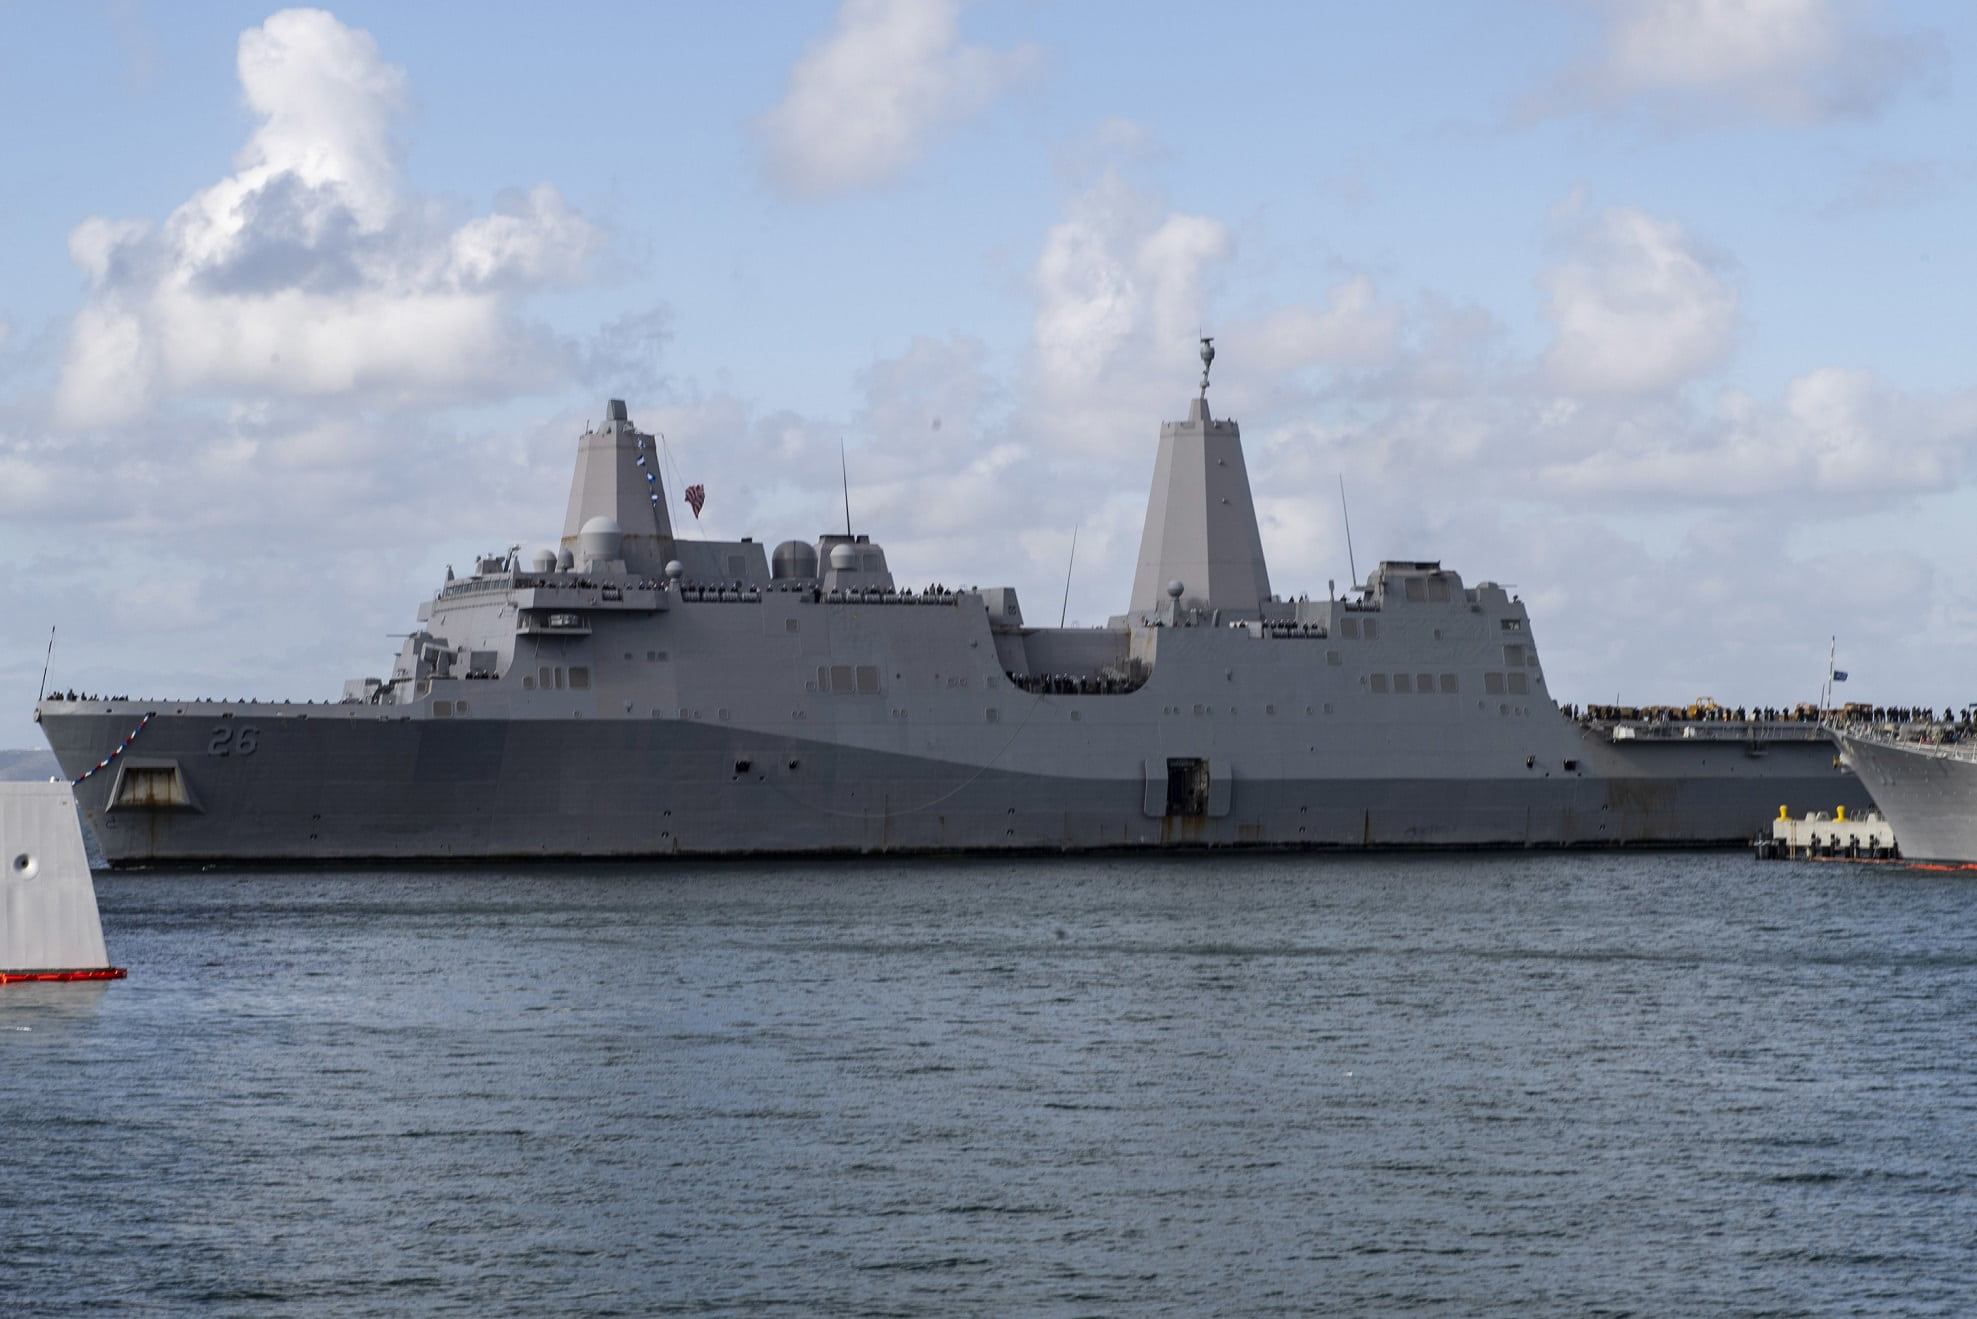 USS John P. Murtha amphibious transport dock ship returns from 7-month deployment – Defence Blog